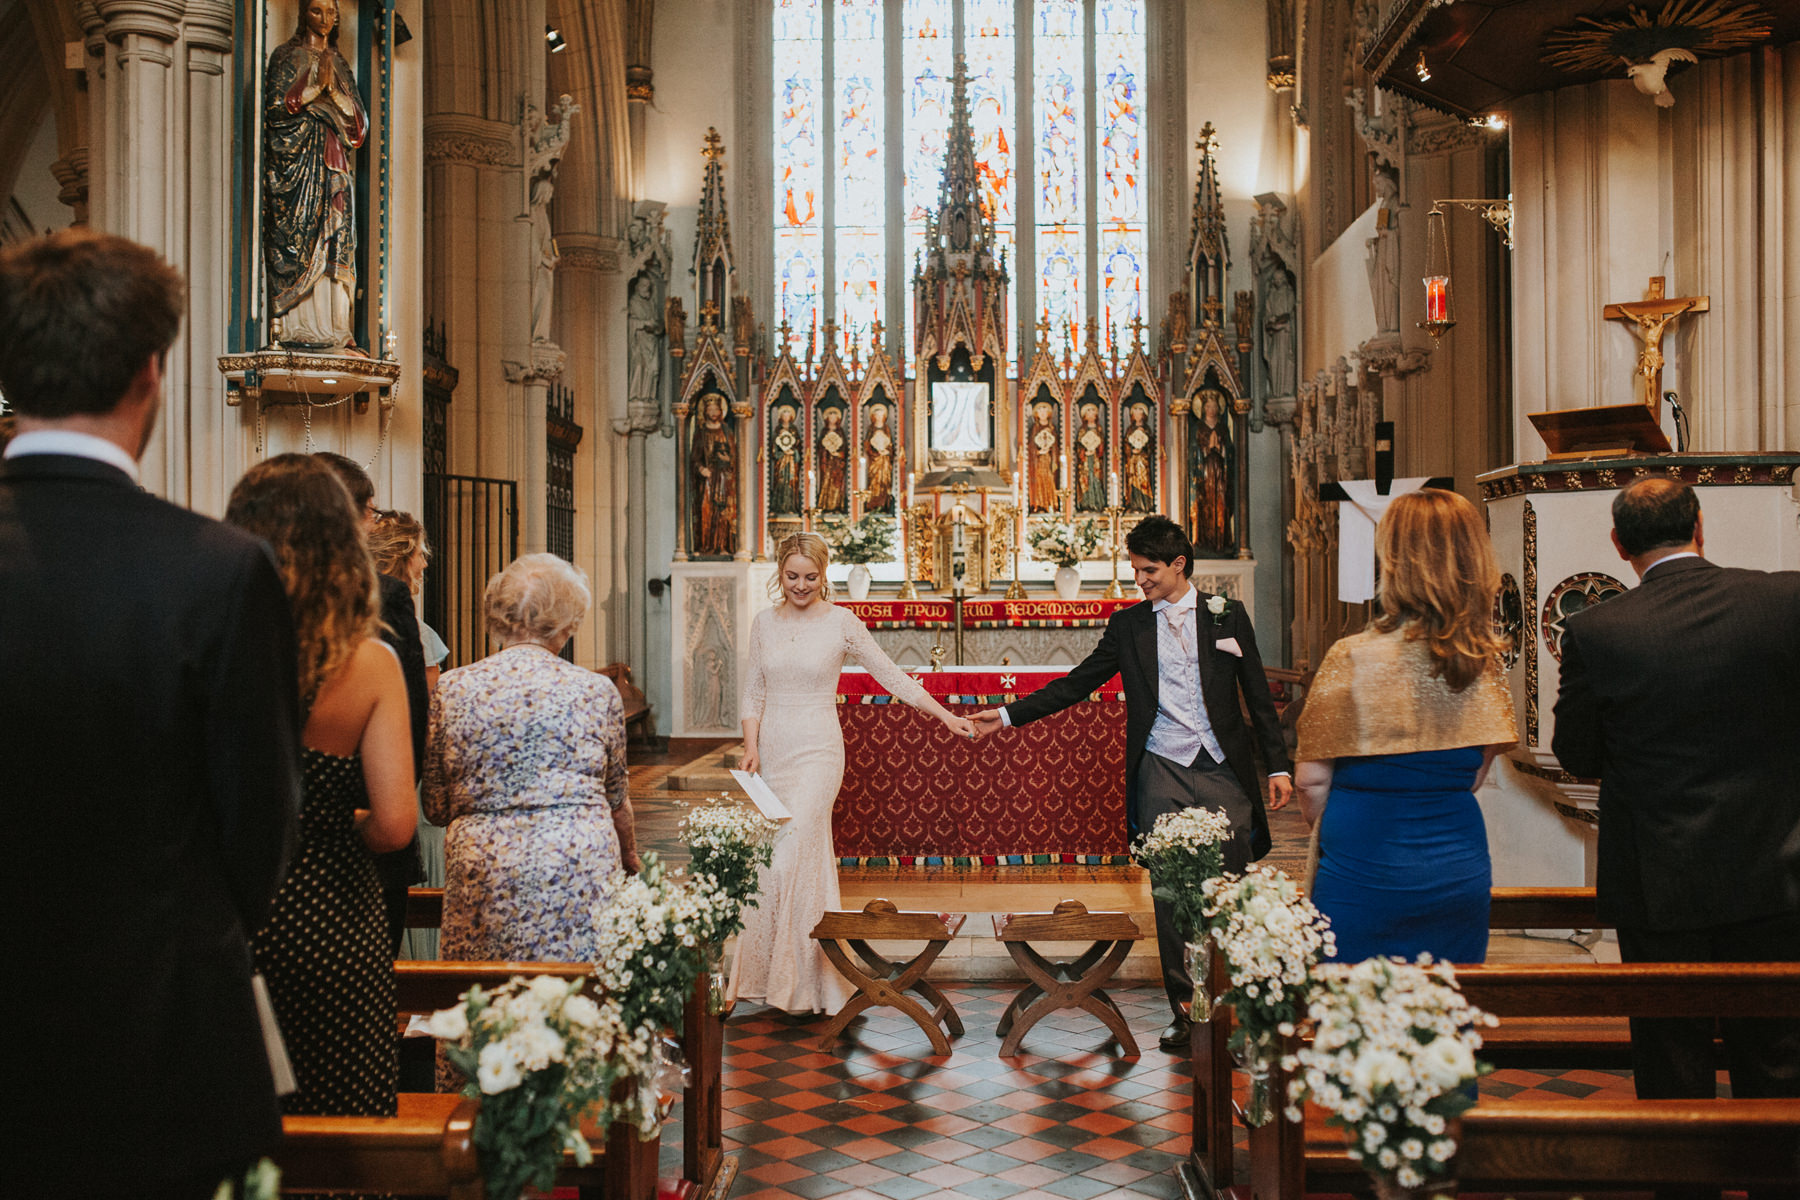 LD-281-bride-groom-coming-down-aisle-St-mary's-catholic-church-wedding-photographer.jpg